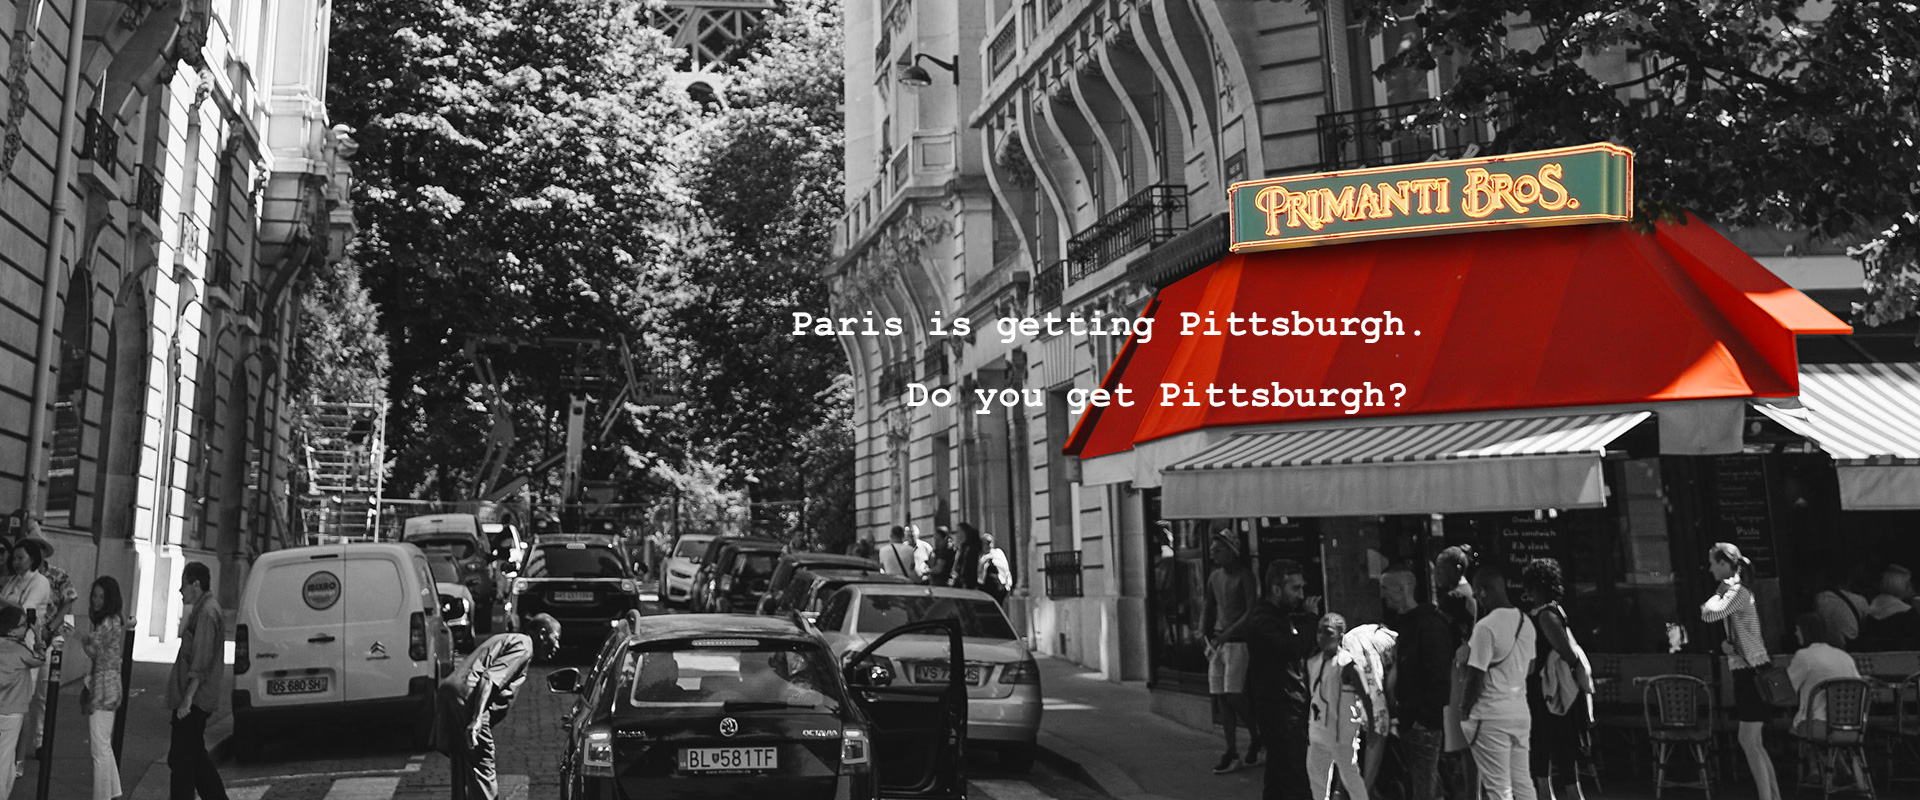 Paris is getting Pittsburg. Do you get Pittsburgh?